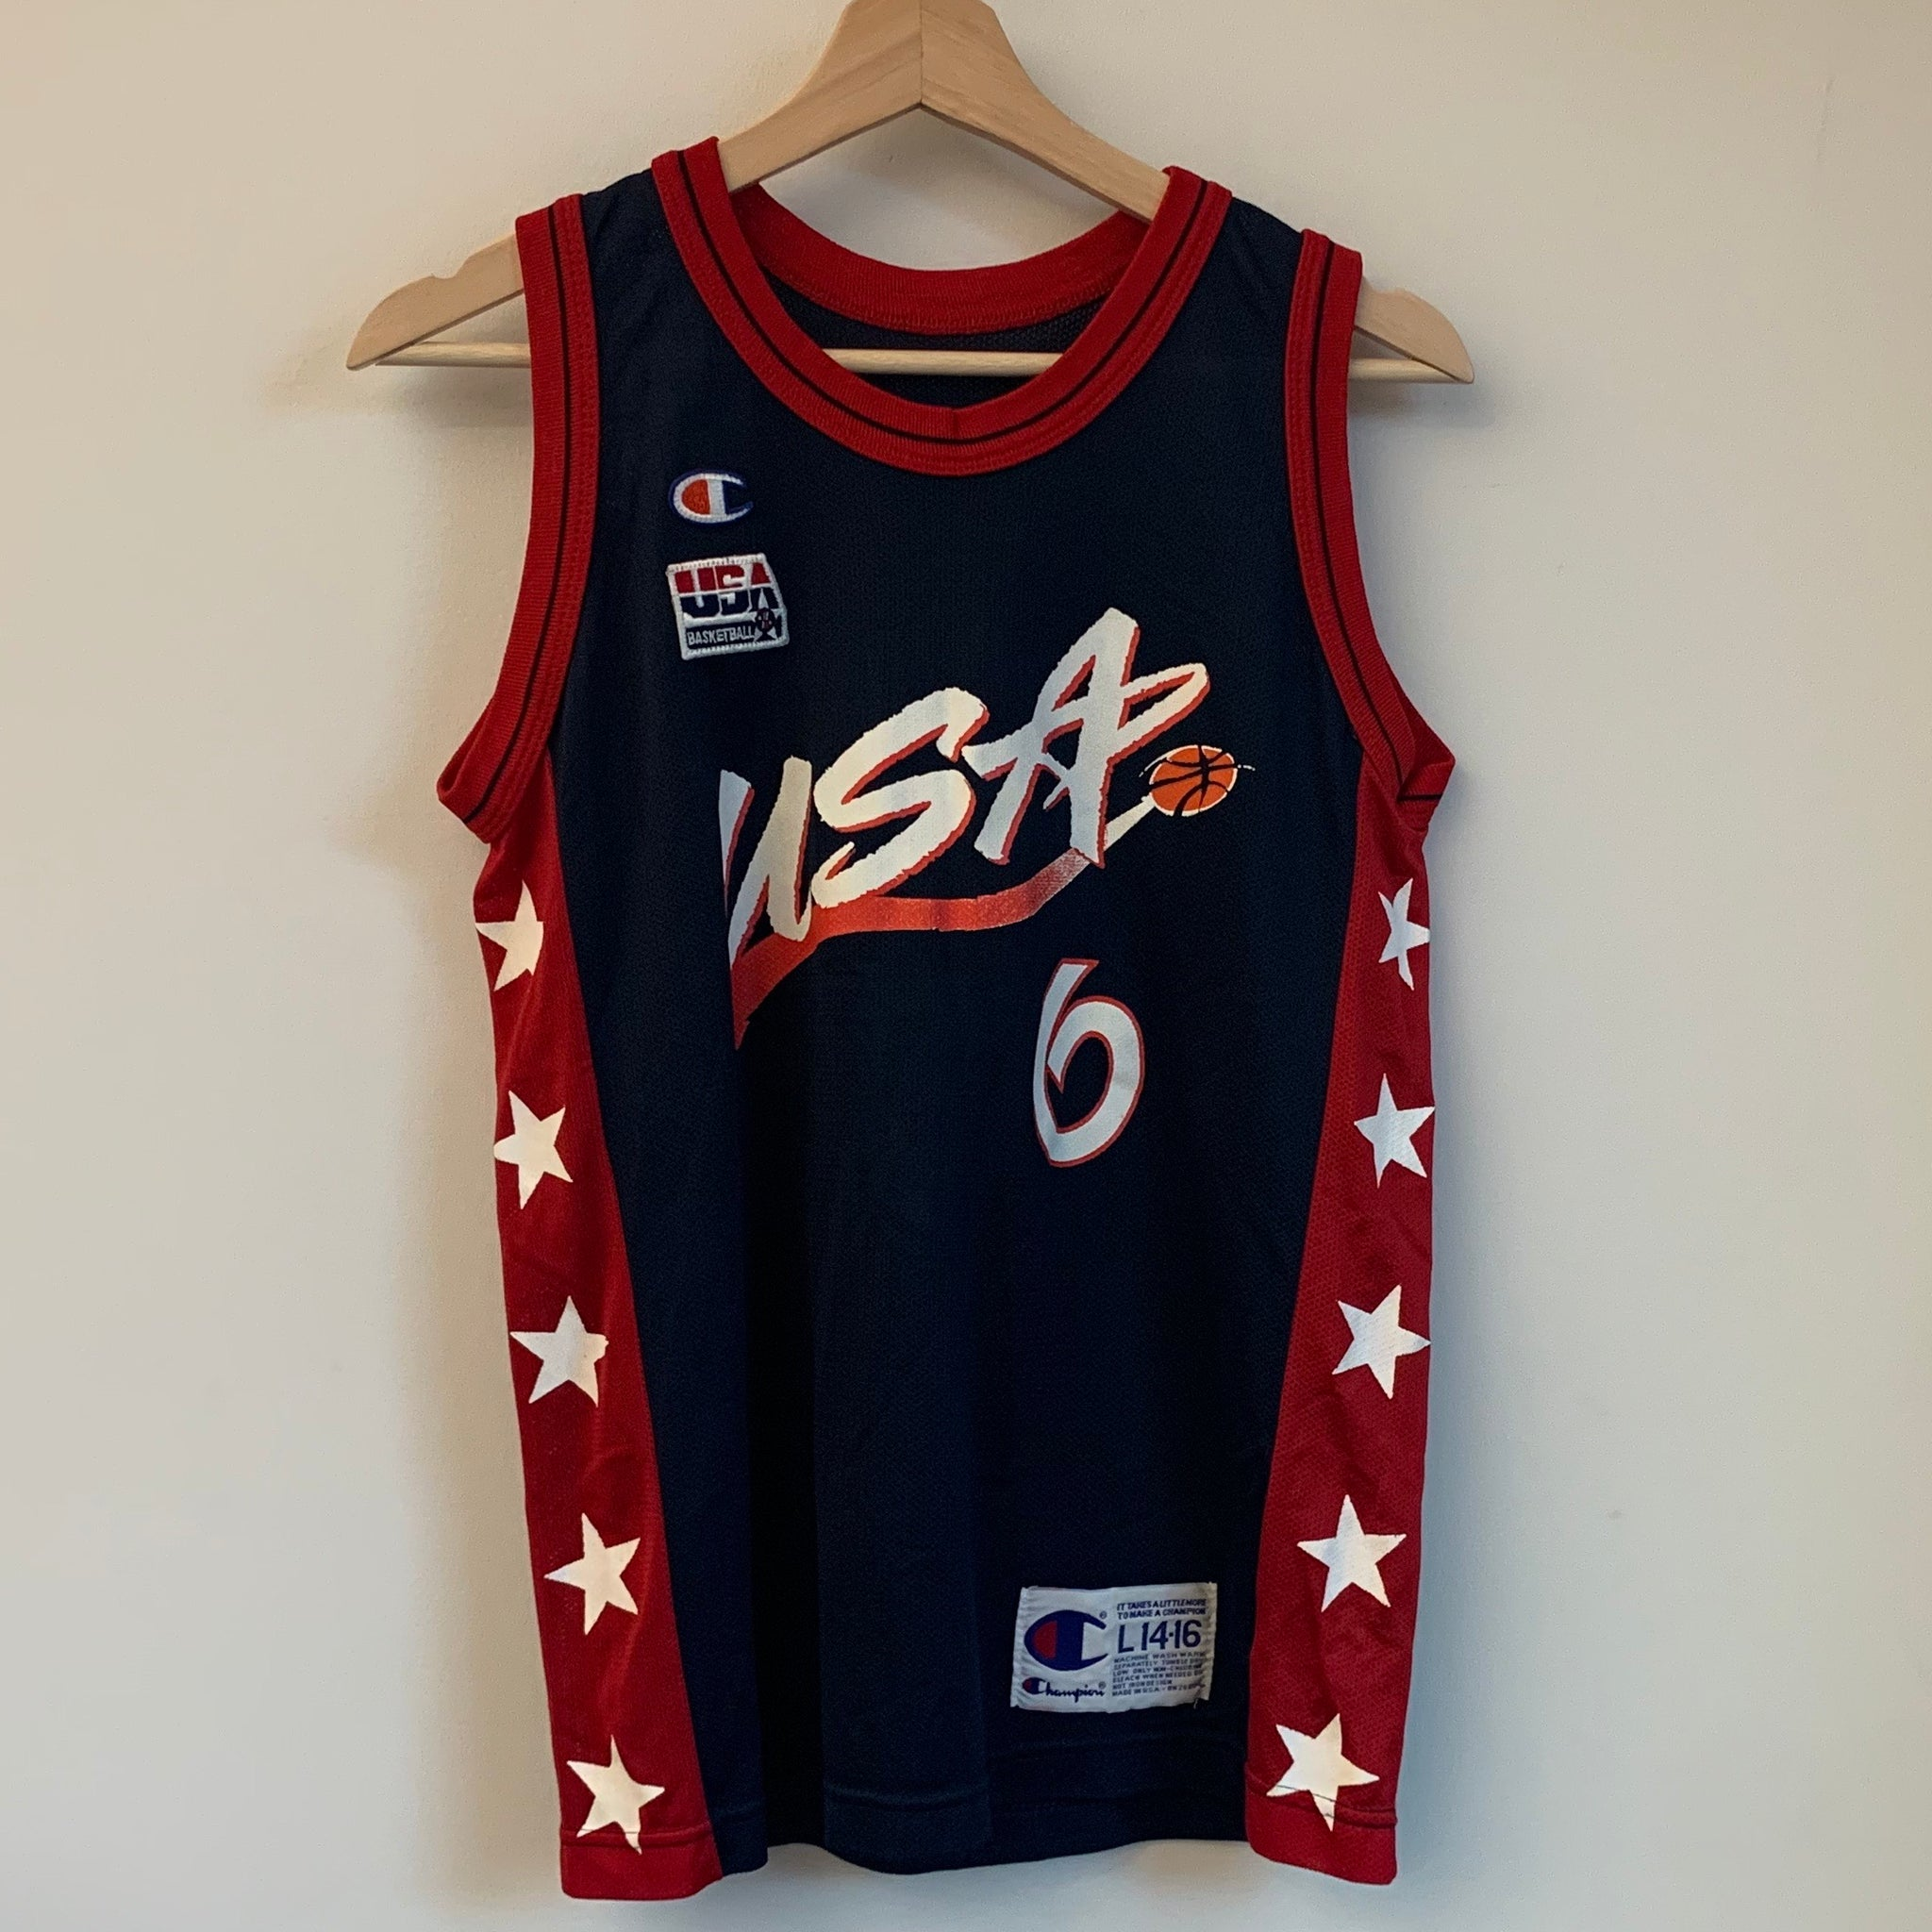 Champion Anfernee Penny Hardaway USA Dream Team 2 Youth Basketball Jersey